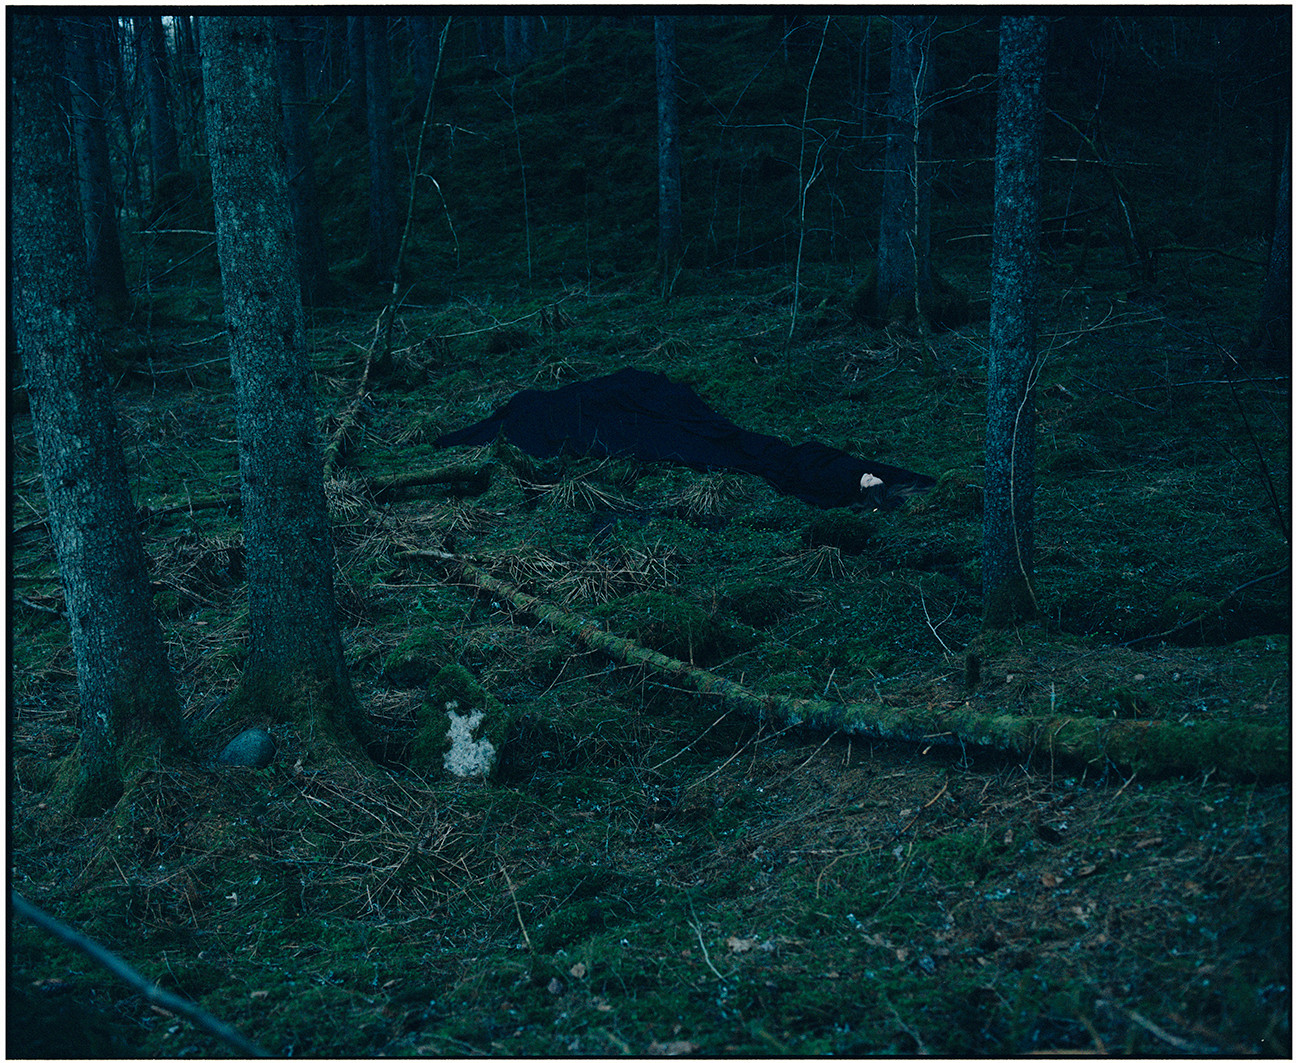 Body in Black in the Forest